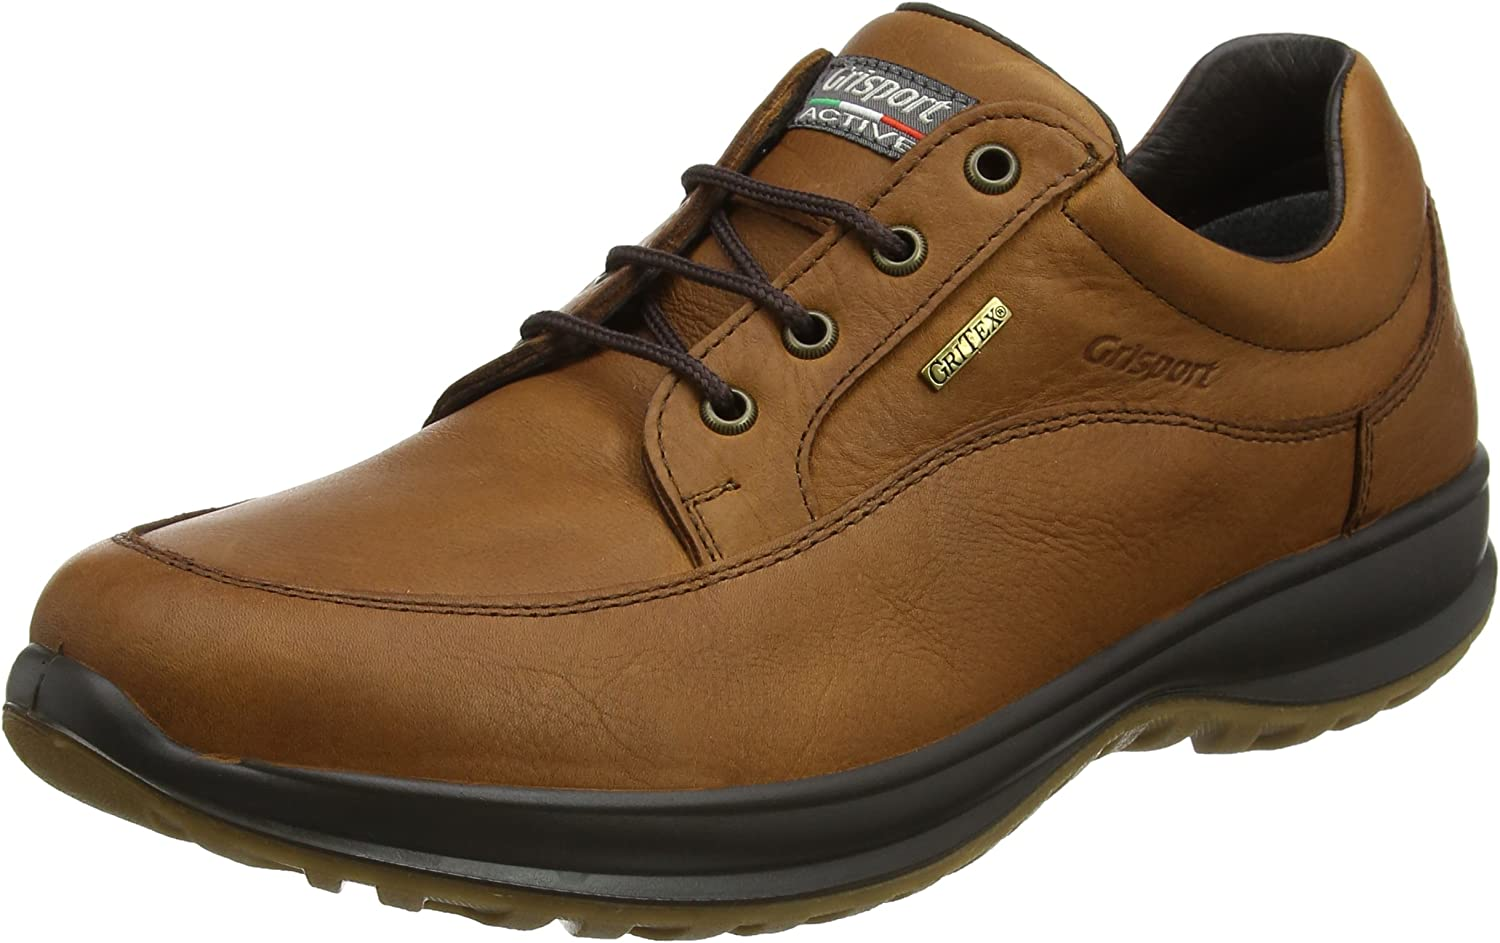 greyport Men's Livingston Low Rise Hiking Boots